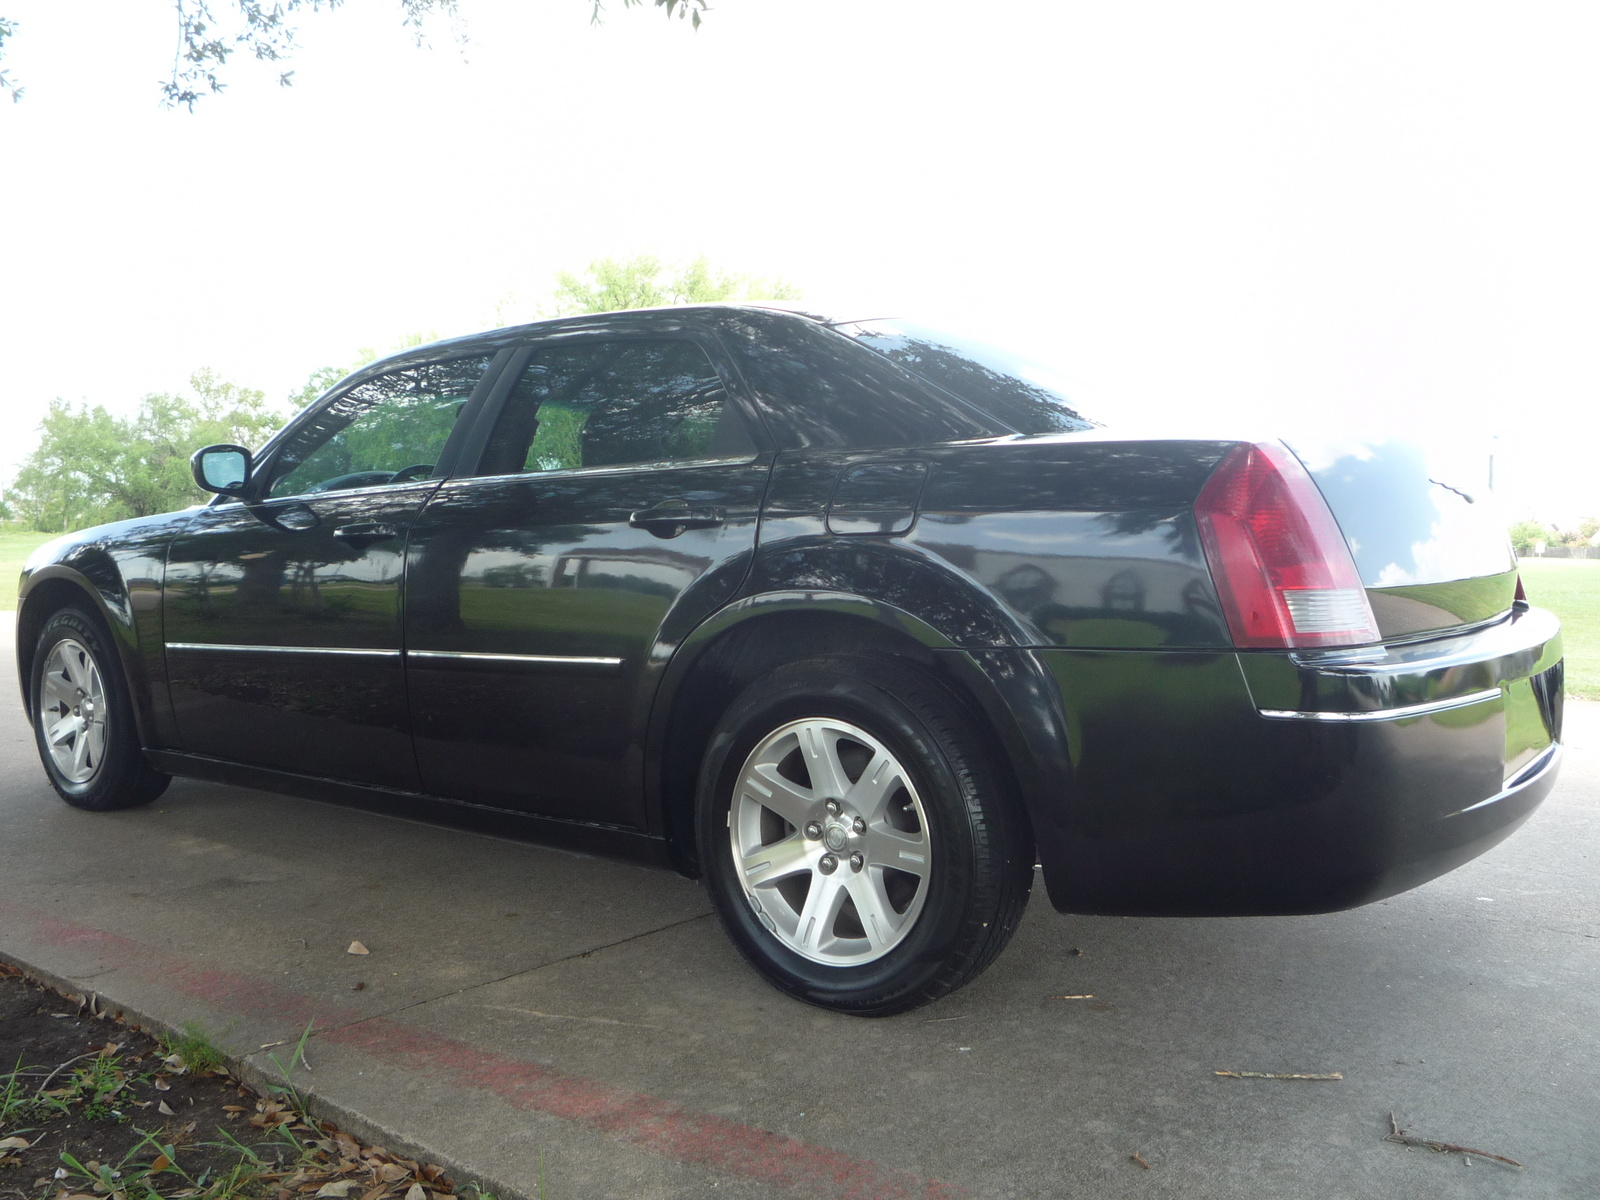 2010 Chrysler 300 Pictures C21853 pi36457652 moreover 2005 Chrysler 300 Pictures C1542 further 2014 Chrysler Town  26 Country Pictures C24092 pi36614908 likewise 2006 Chrysler 300 Pictures C1541 also 1975 Plymouth Fury Pictures C9191. on 1956 dodge neon